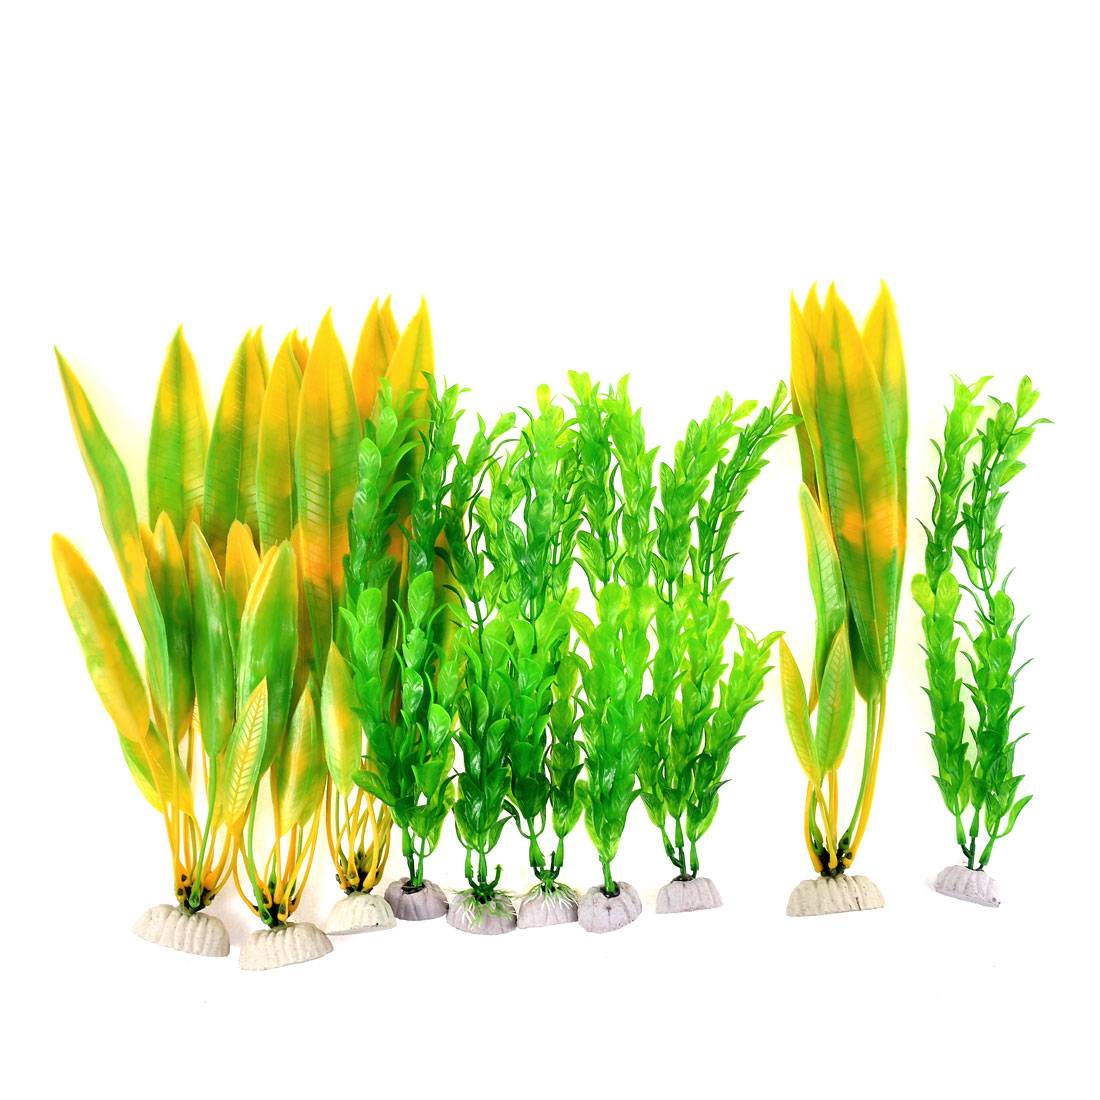 Aquarium Ornament Plastic Underwater Grass Leaves Plants Green Yellow 10pcs